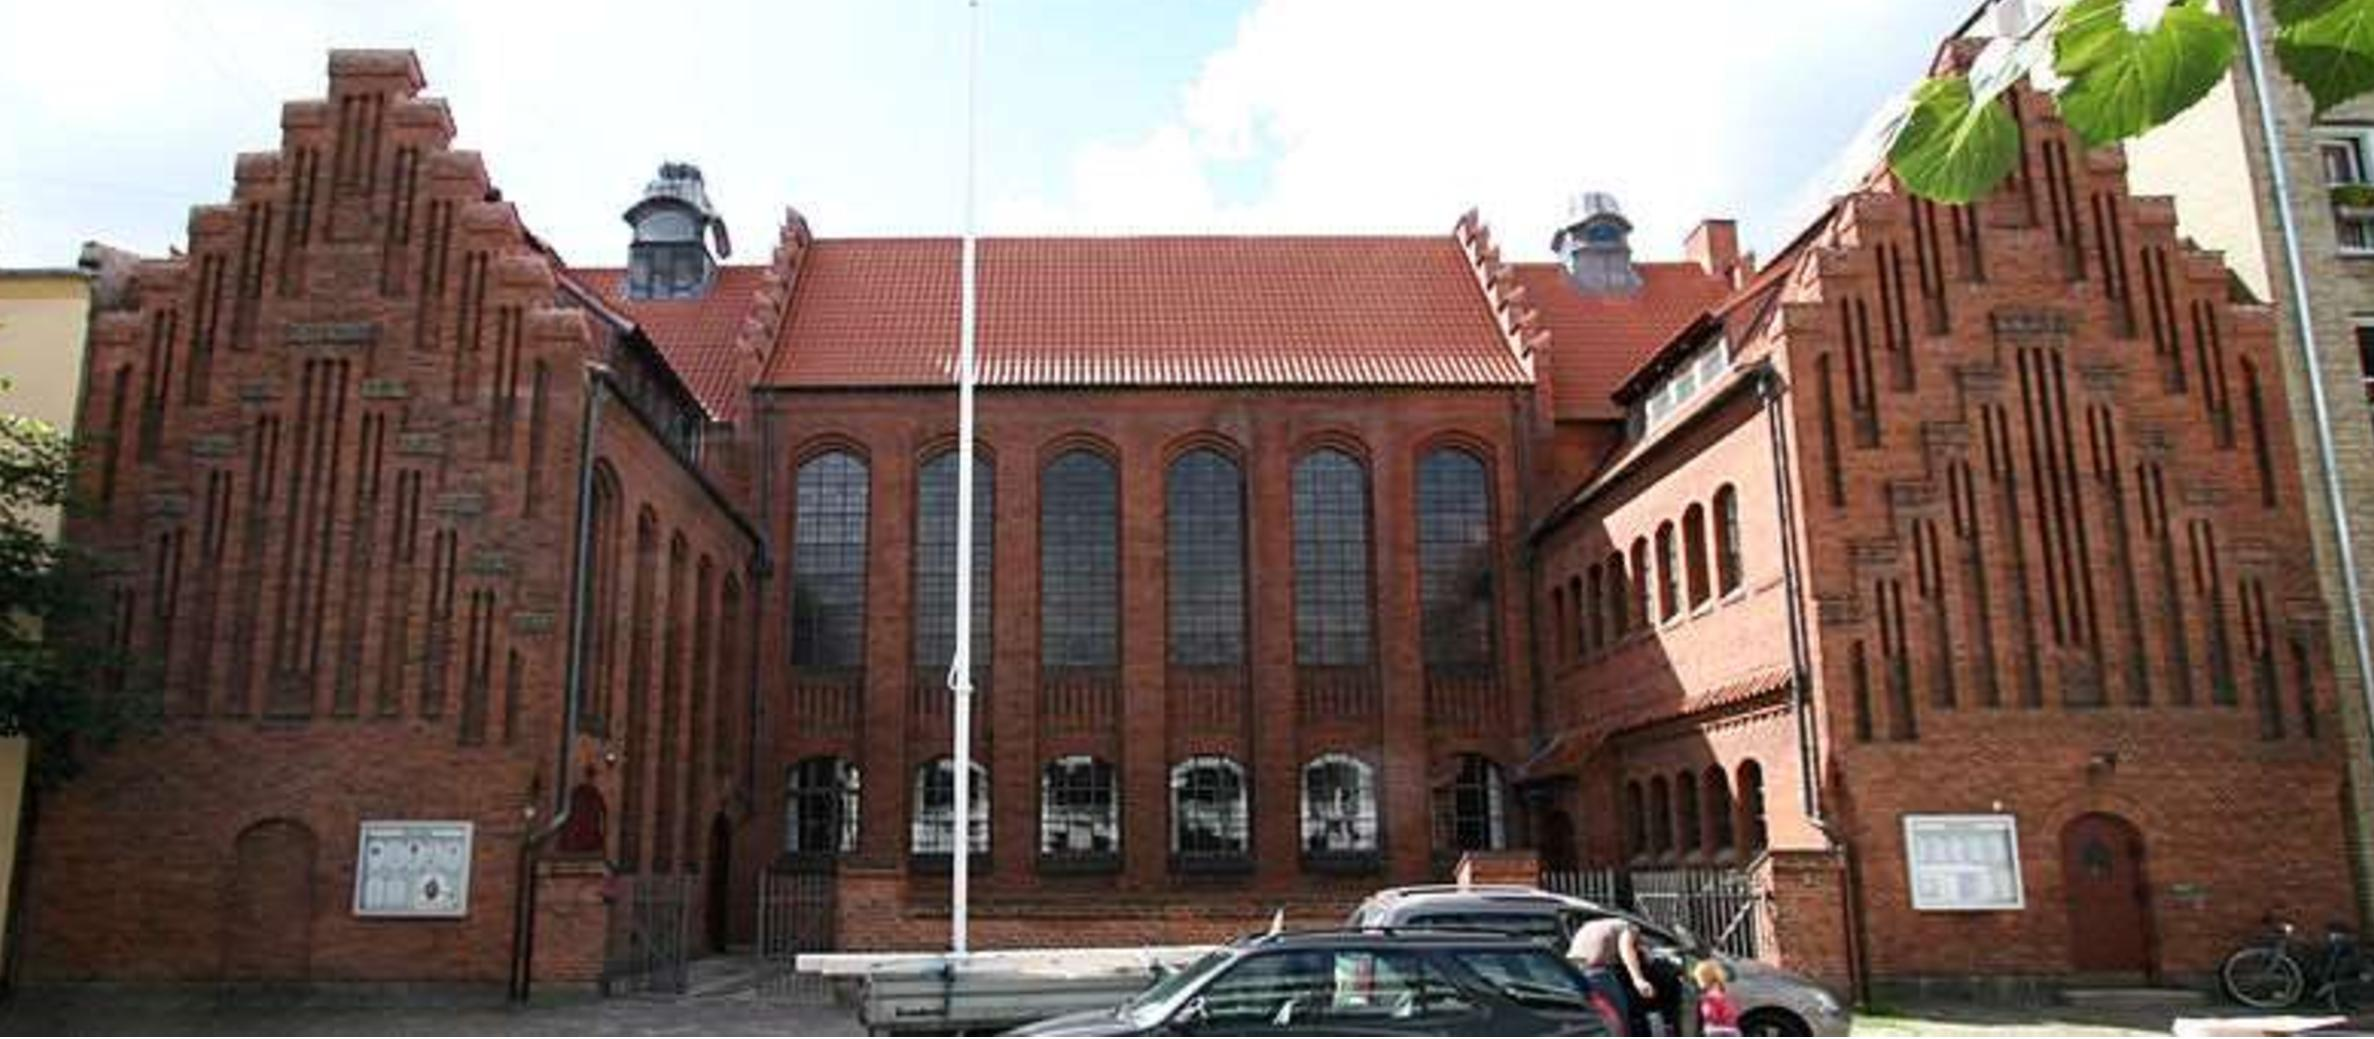 Denmark: Church vandalised in anti-Semitic attack